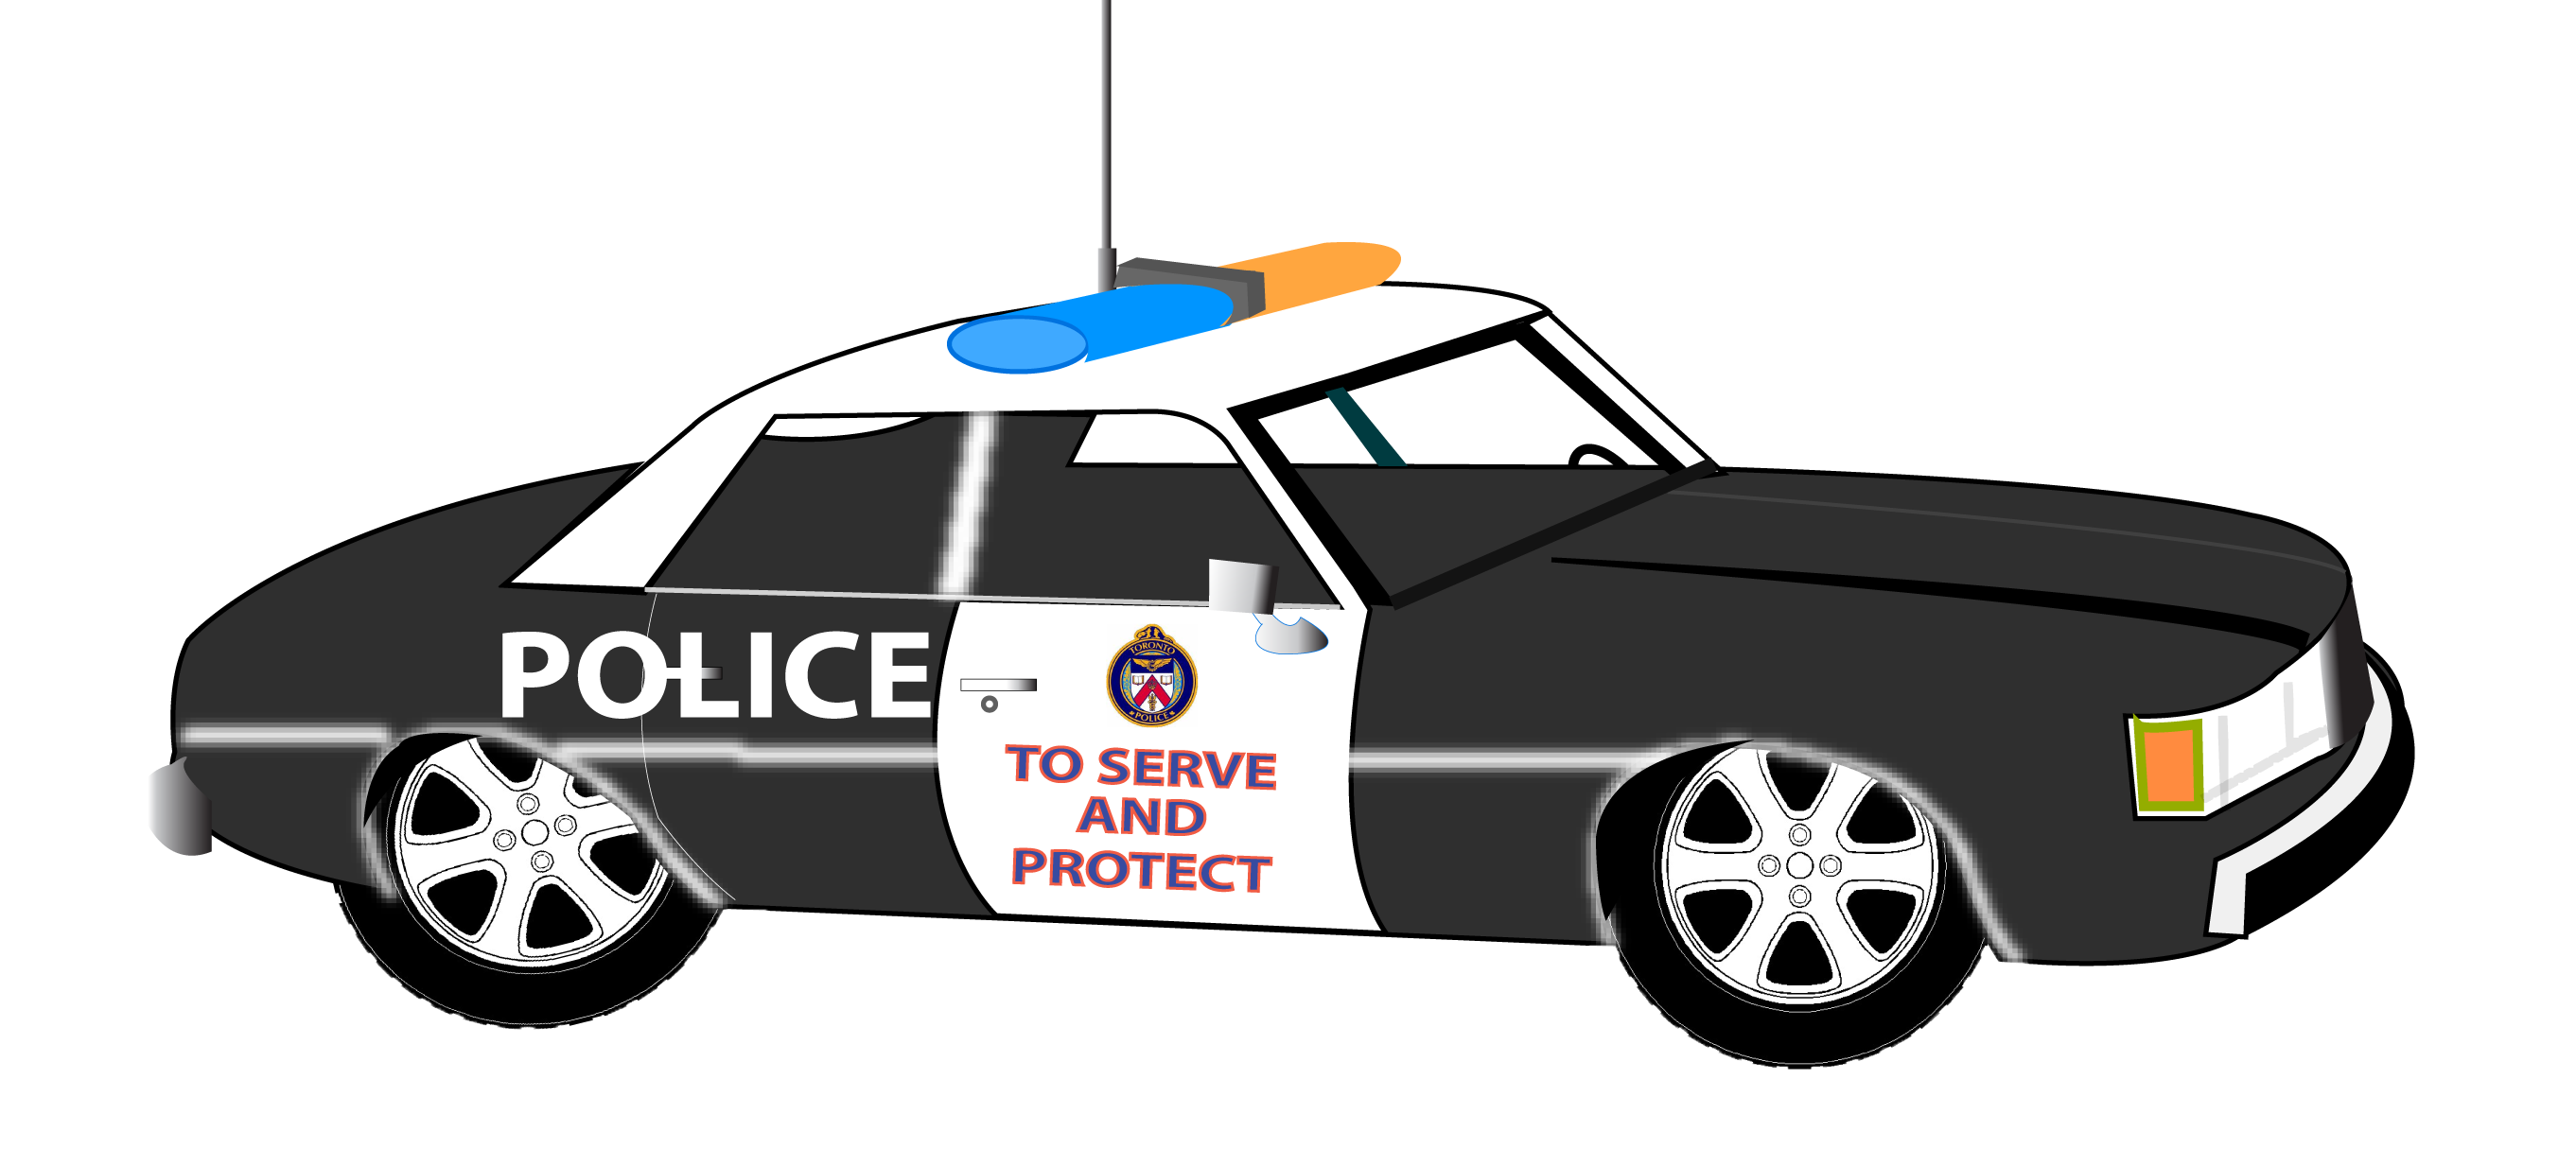 Police officer car clipart vector 28+ Collection of Police Car Clipart Png | High quality, free ... vector